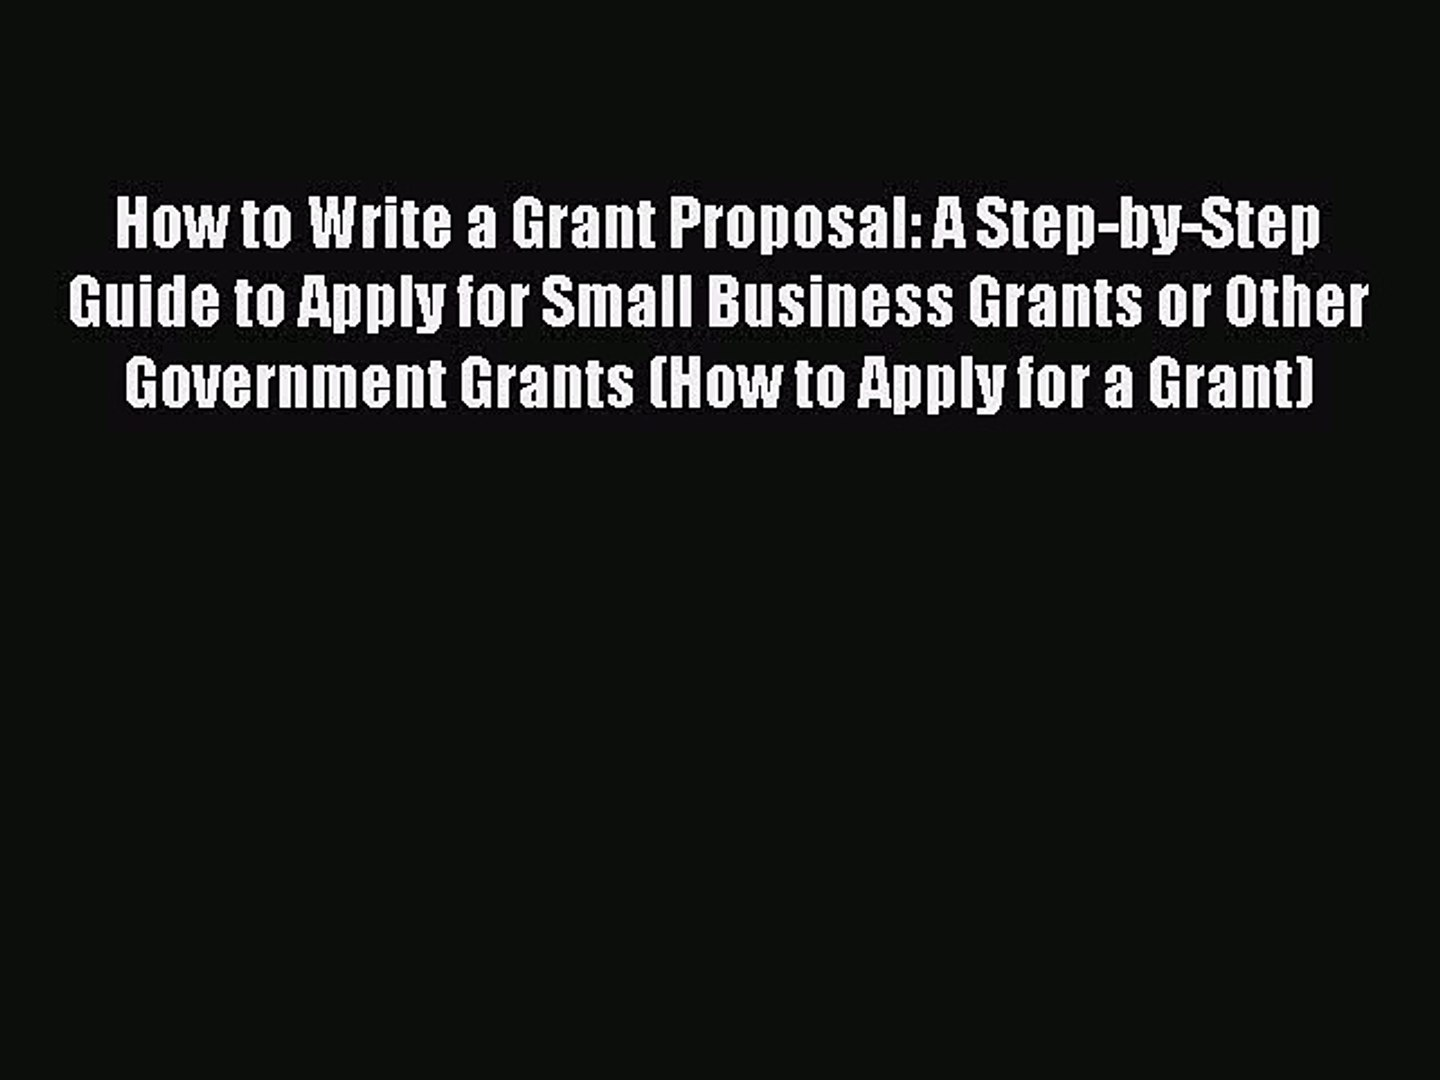 Popular book How to Write a Grant Proposal: A Step-by-Step Guide to Apply for Small Business